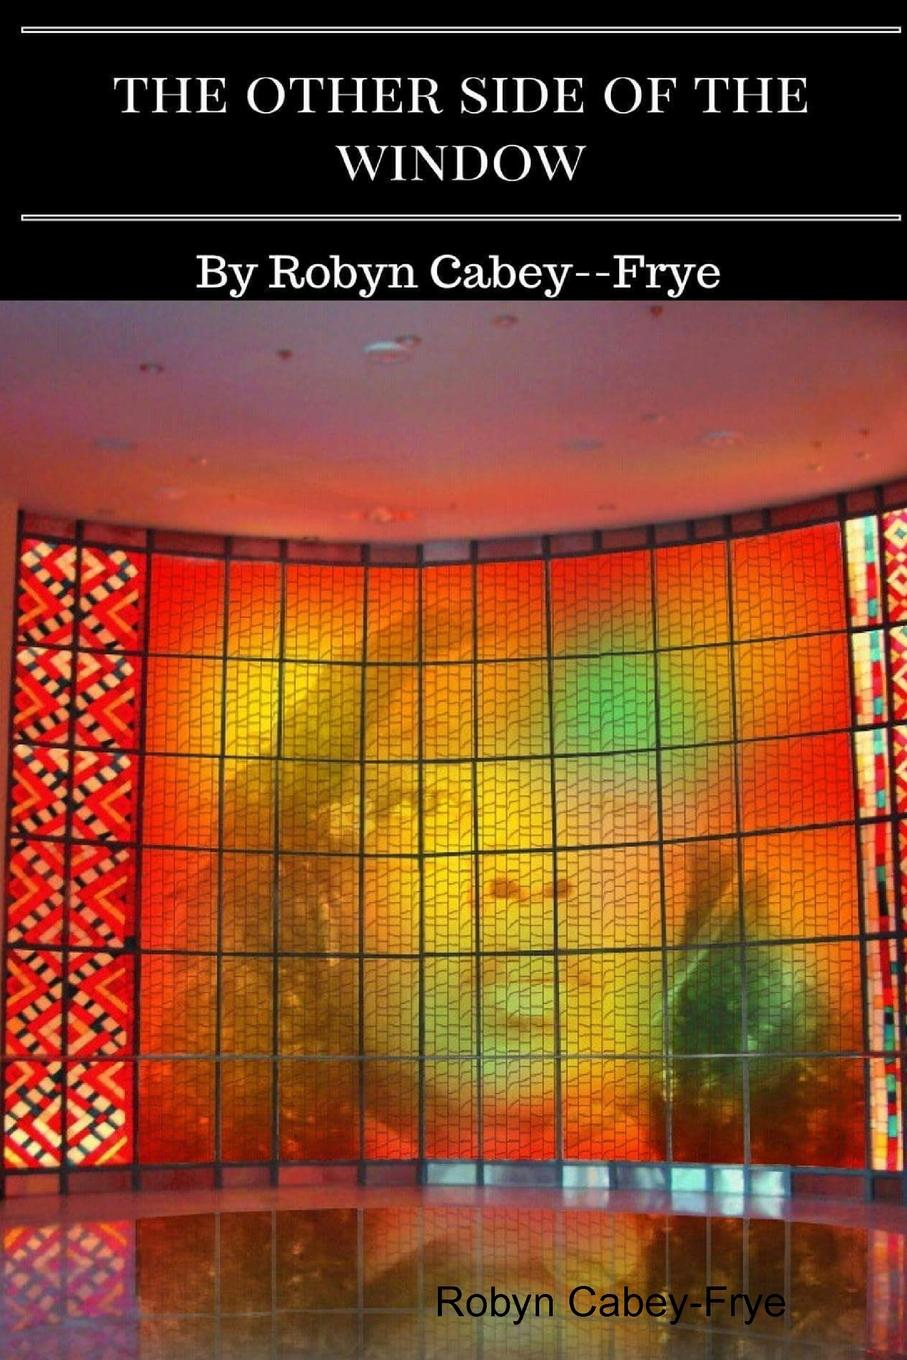 лучшая цена Robyn Cabey-Frye The Other Side of the Window